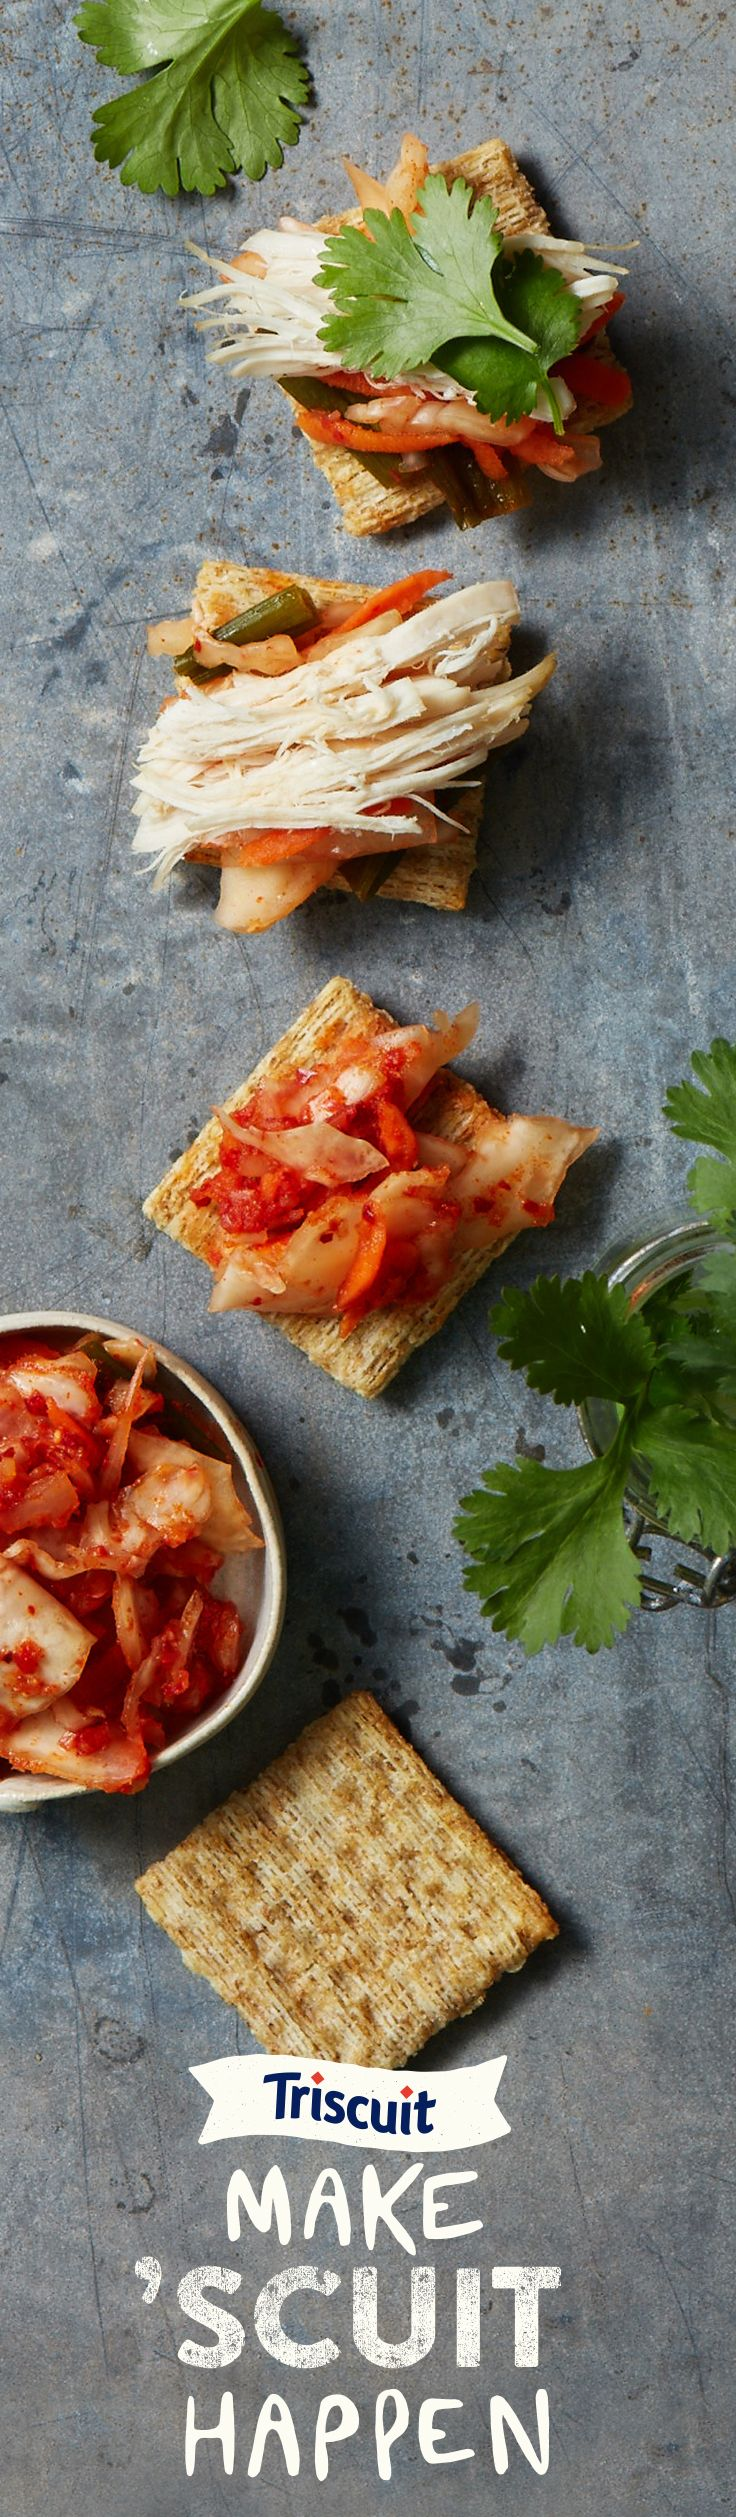 Make 'Scuit Happen with kimchi, cilantro and chicken. You're only limited by your appetite with TRISCUIT crackers.